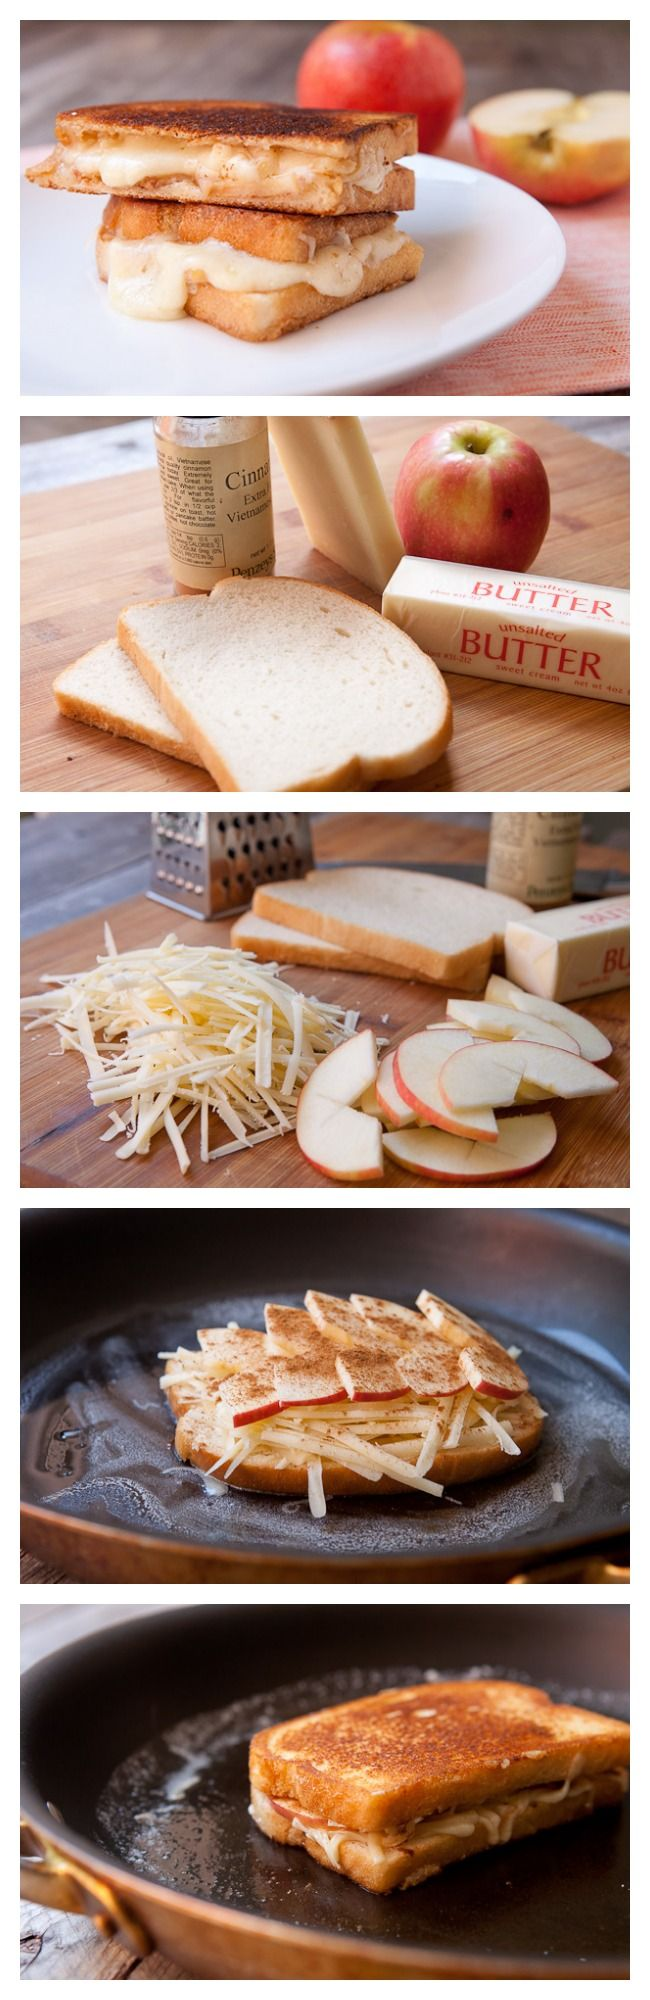 Apple Gruyere Grilled Cheese